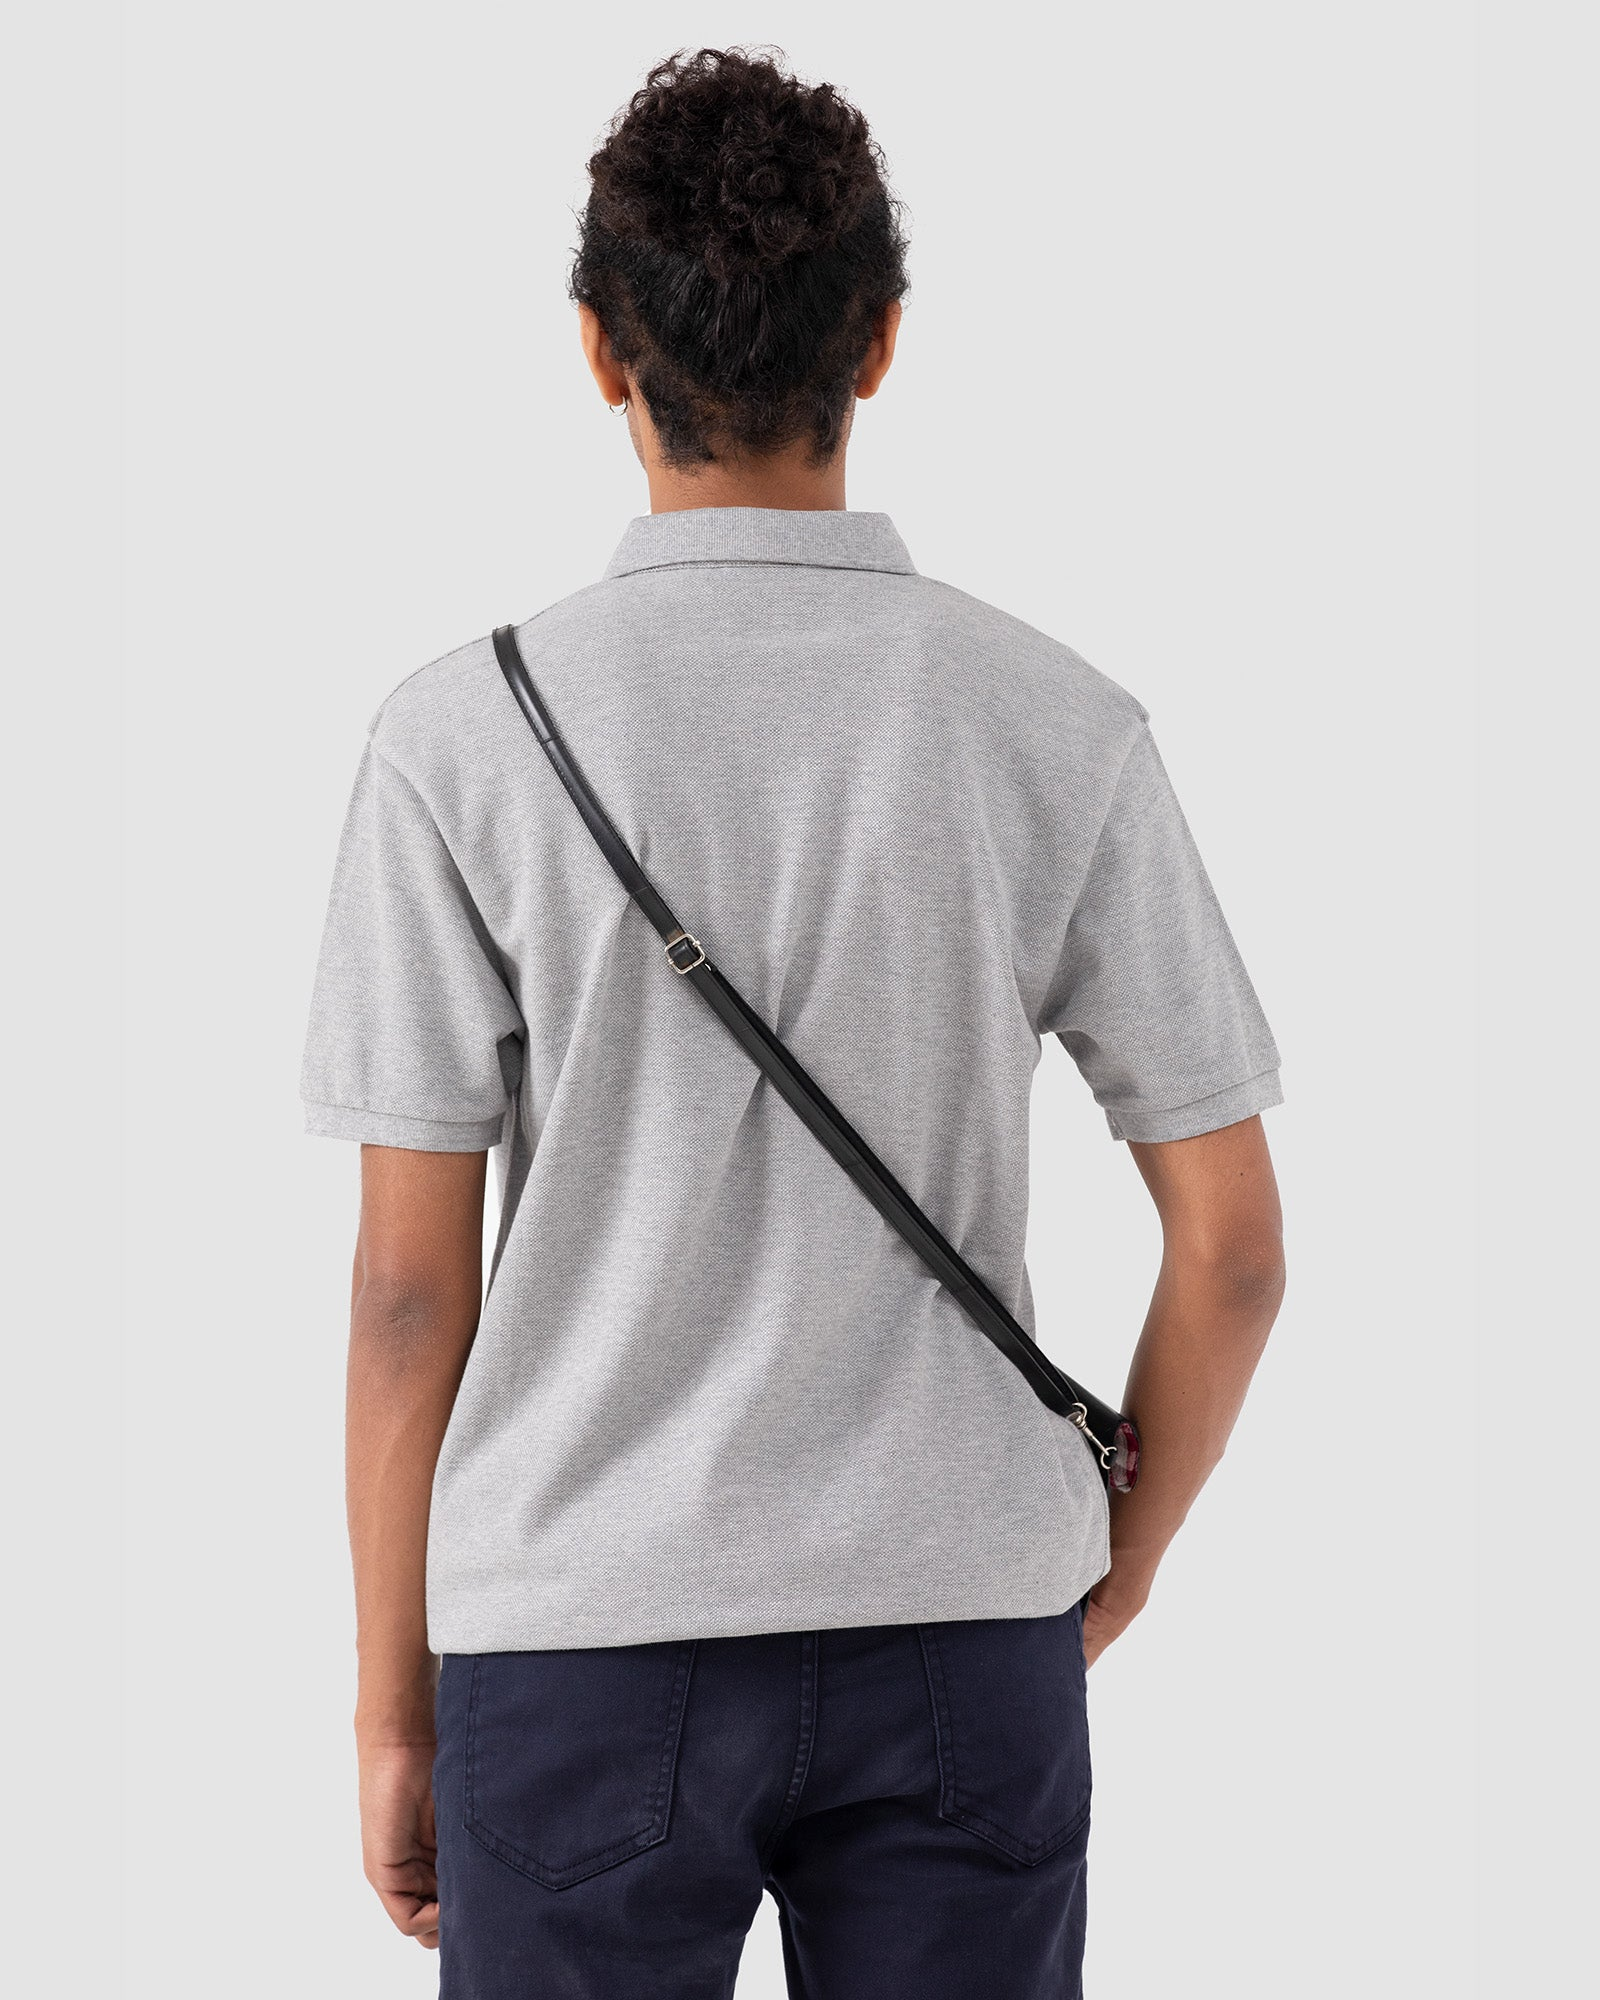 On the Road Polo Tee